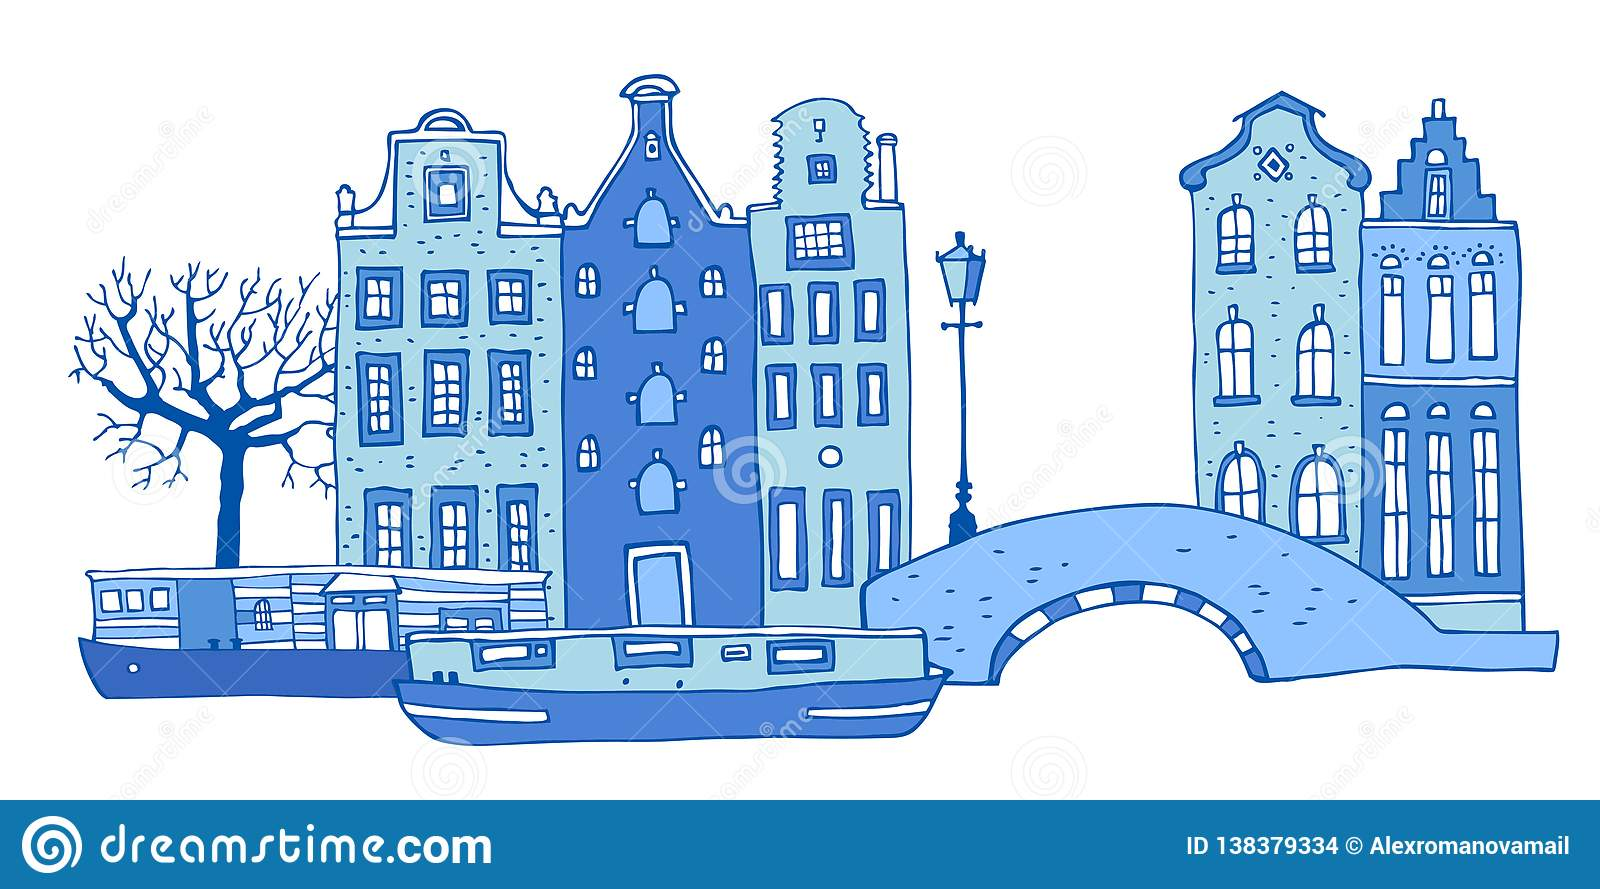 Amsterdam street scene. Vector outline sketch hand drawn illustration. Houses with bridge, lantern, trees and boats